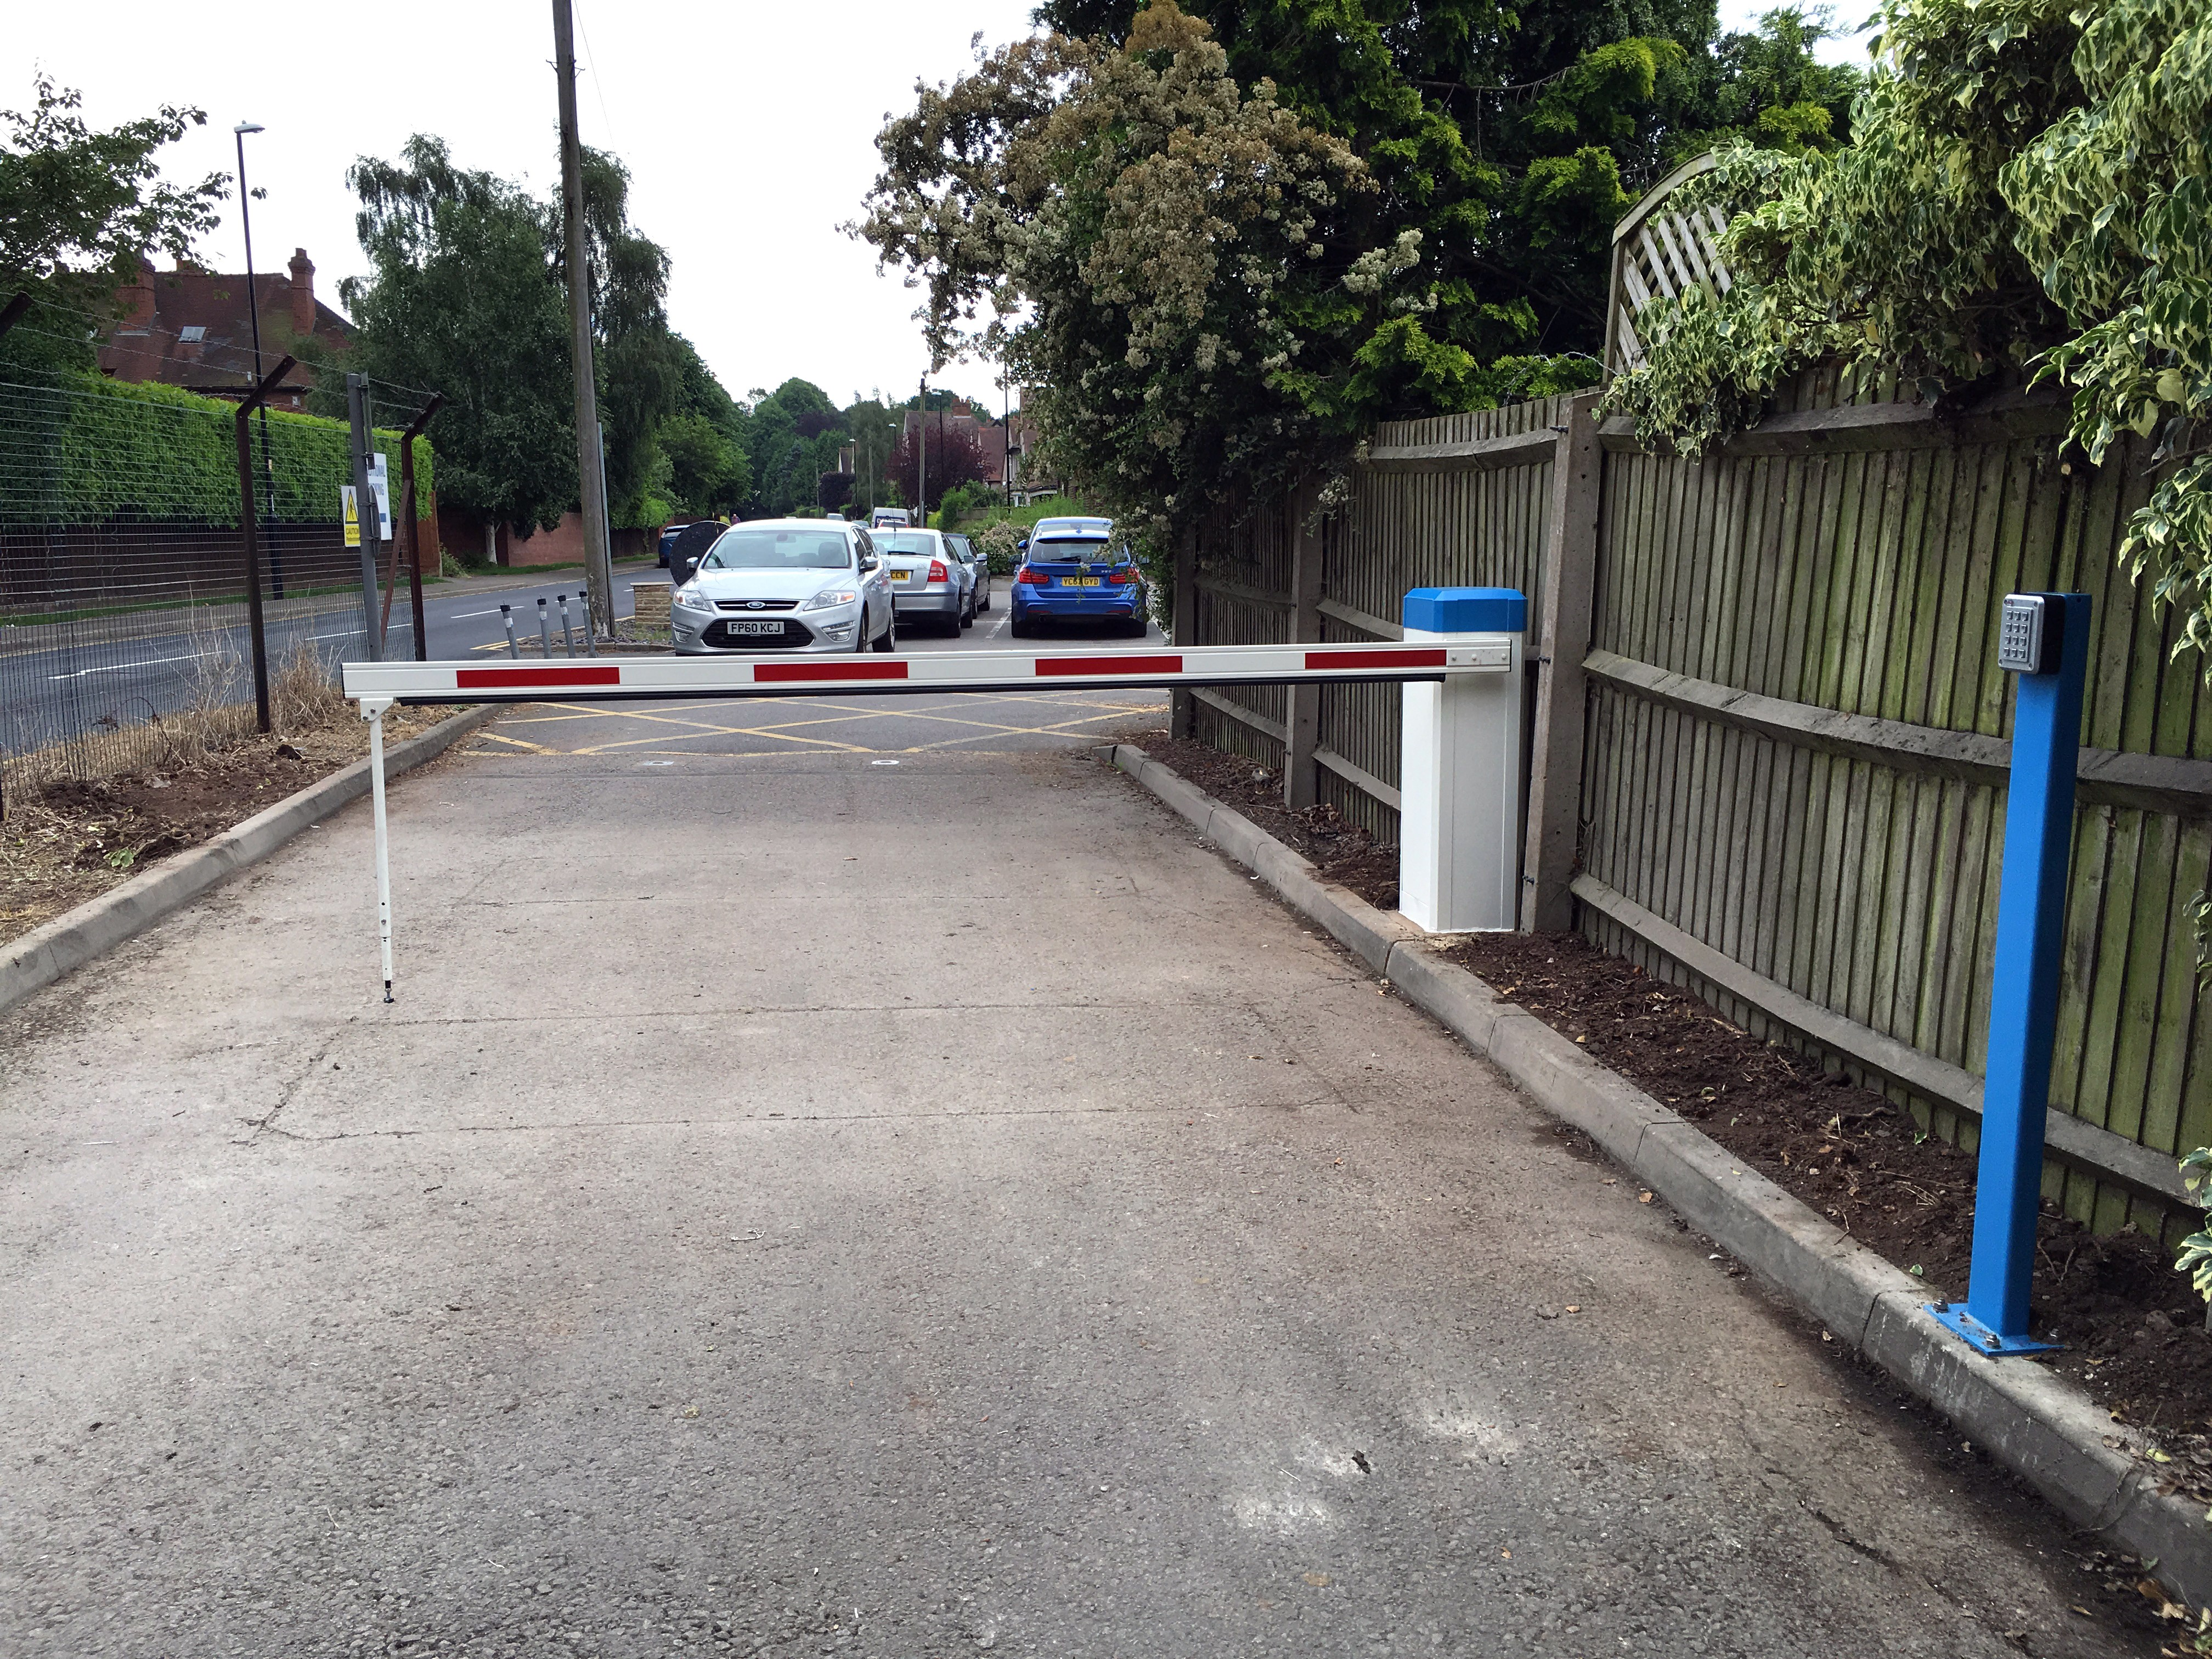 AUTOPA Automatic Arm Barrier creates a safe and secure car park for Hearsall Golf club article image